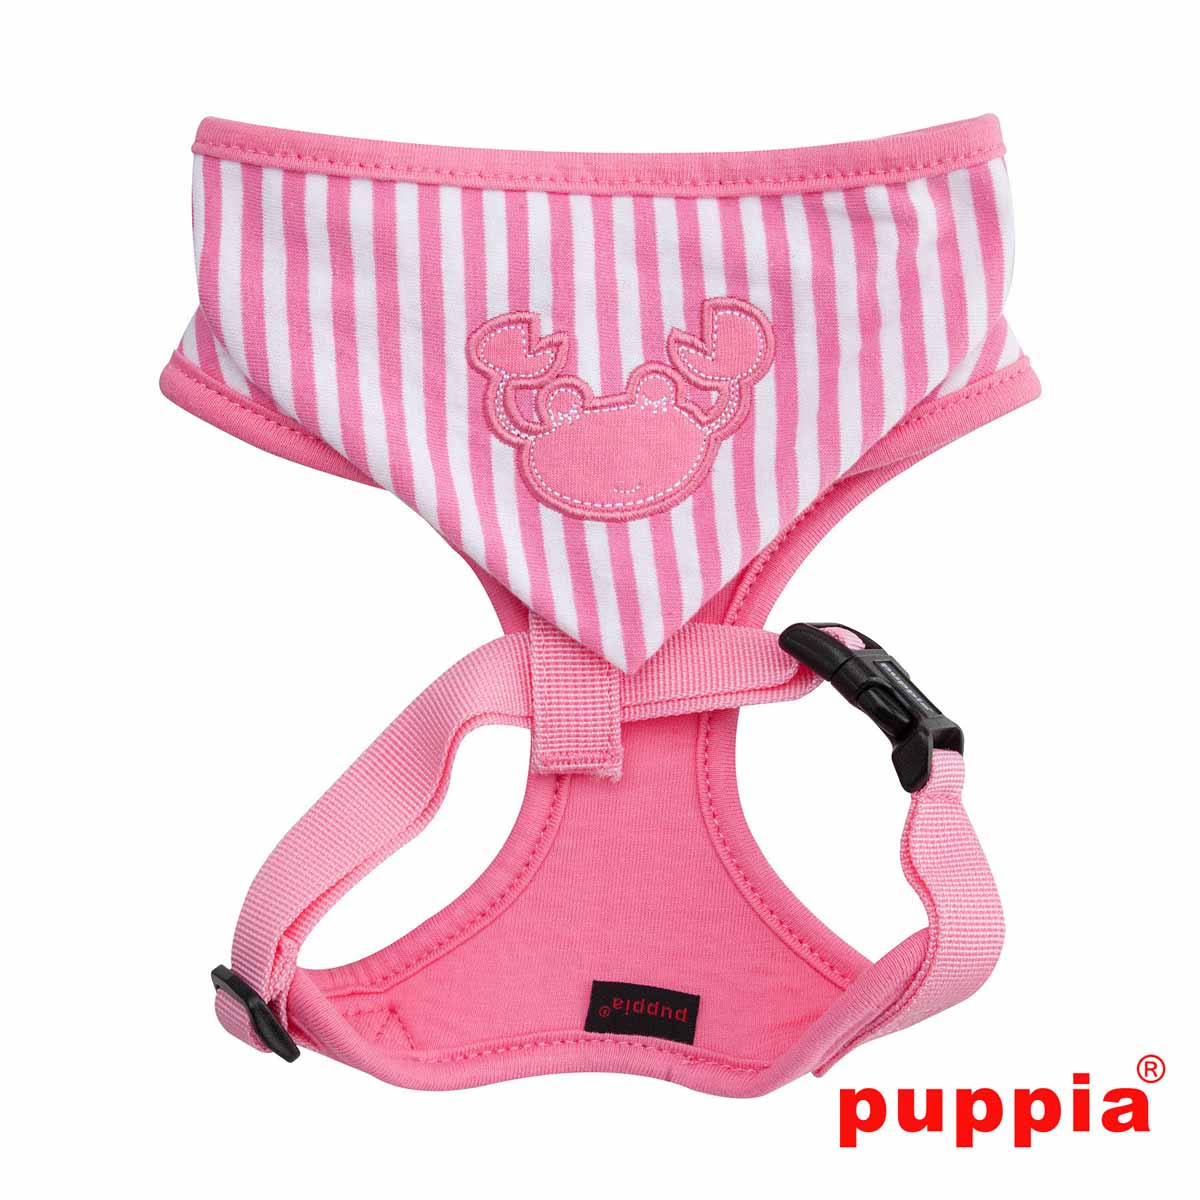 Beach Party Adjustable Dog Harness by Puppia - Pink with Hood with